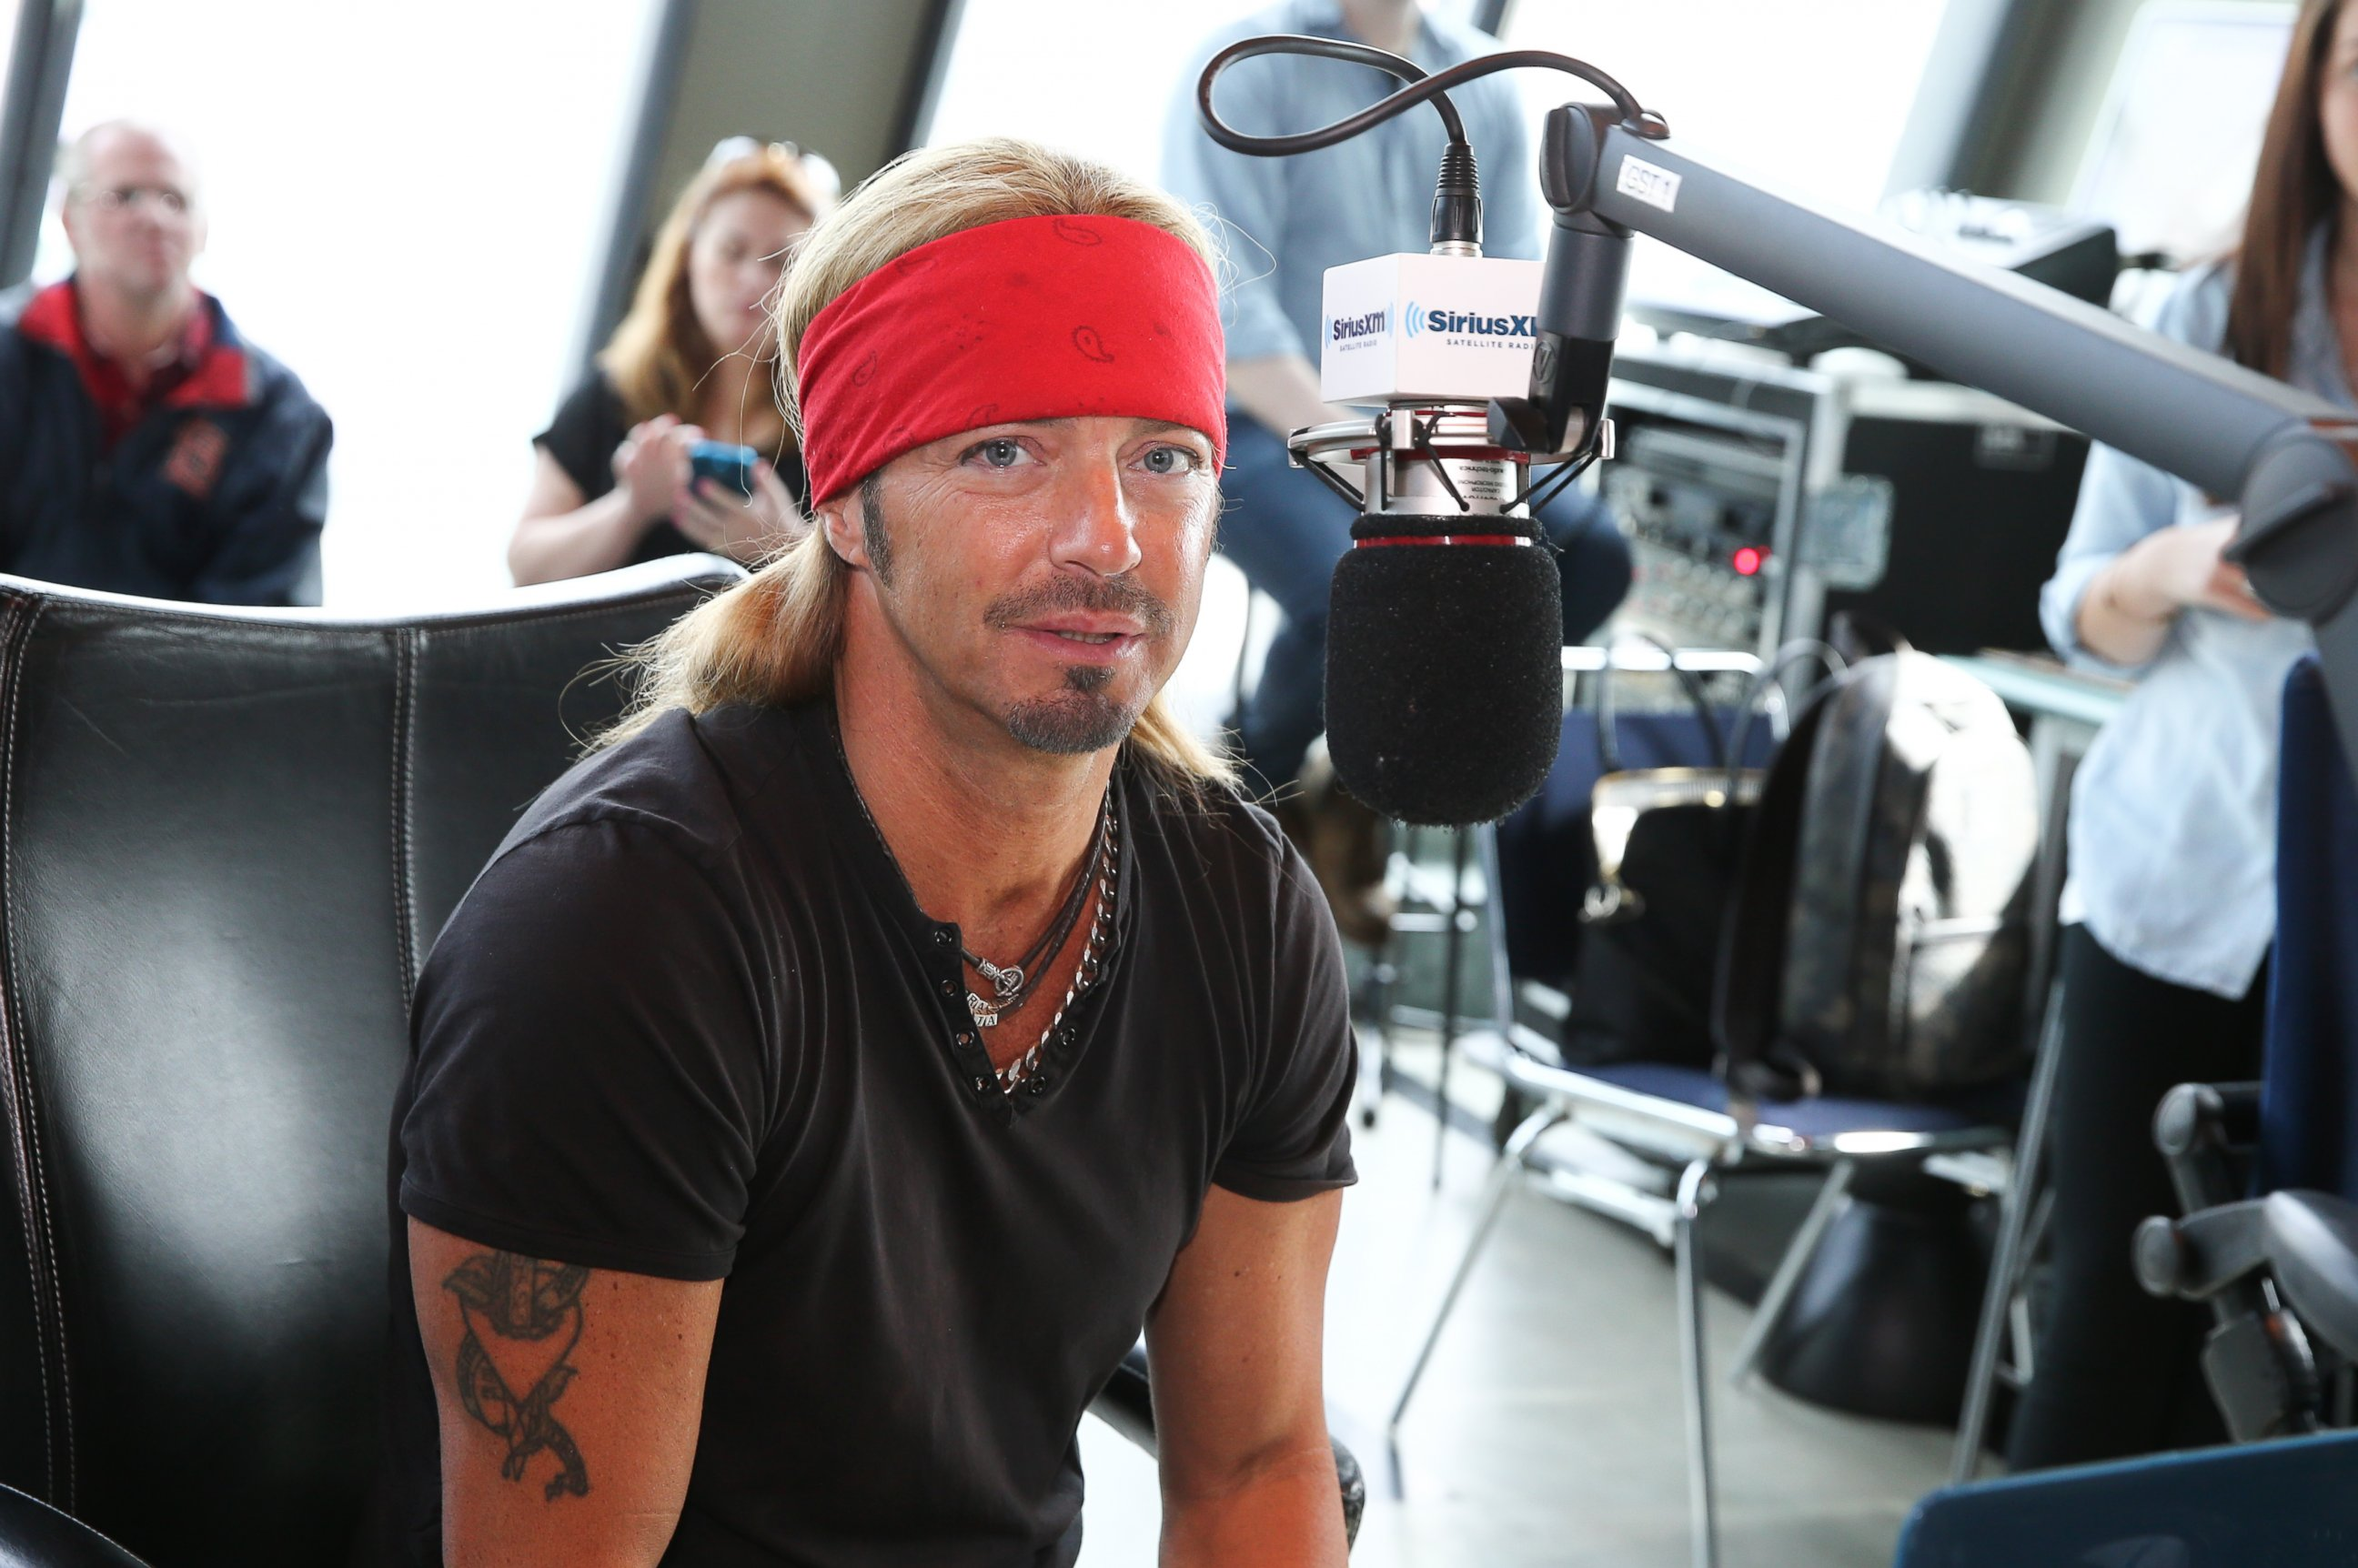 bret michaels websitebret michaels 1988, bret michaels new album, bret michaels height, bret michaels lie to me, bret michaels band, bret michaels country, bret michaels app, bret michaels look what the cat dragged in, bret michaels every rose, bret michaels net worth, bret michaels wasted time, bret michaels quotes, bret michaels curtain, bret michaels diabetes, bret michaels discography, bret michaels website, bret michaels nothing to lose, bret michaels all i ever needed, bret michaels instagram, bret michaels eva longoria